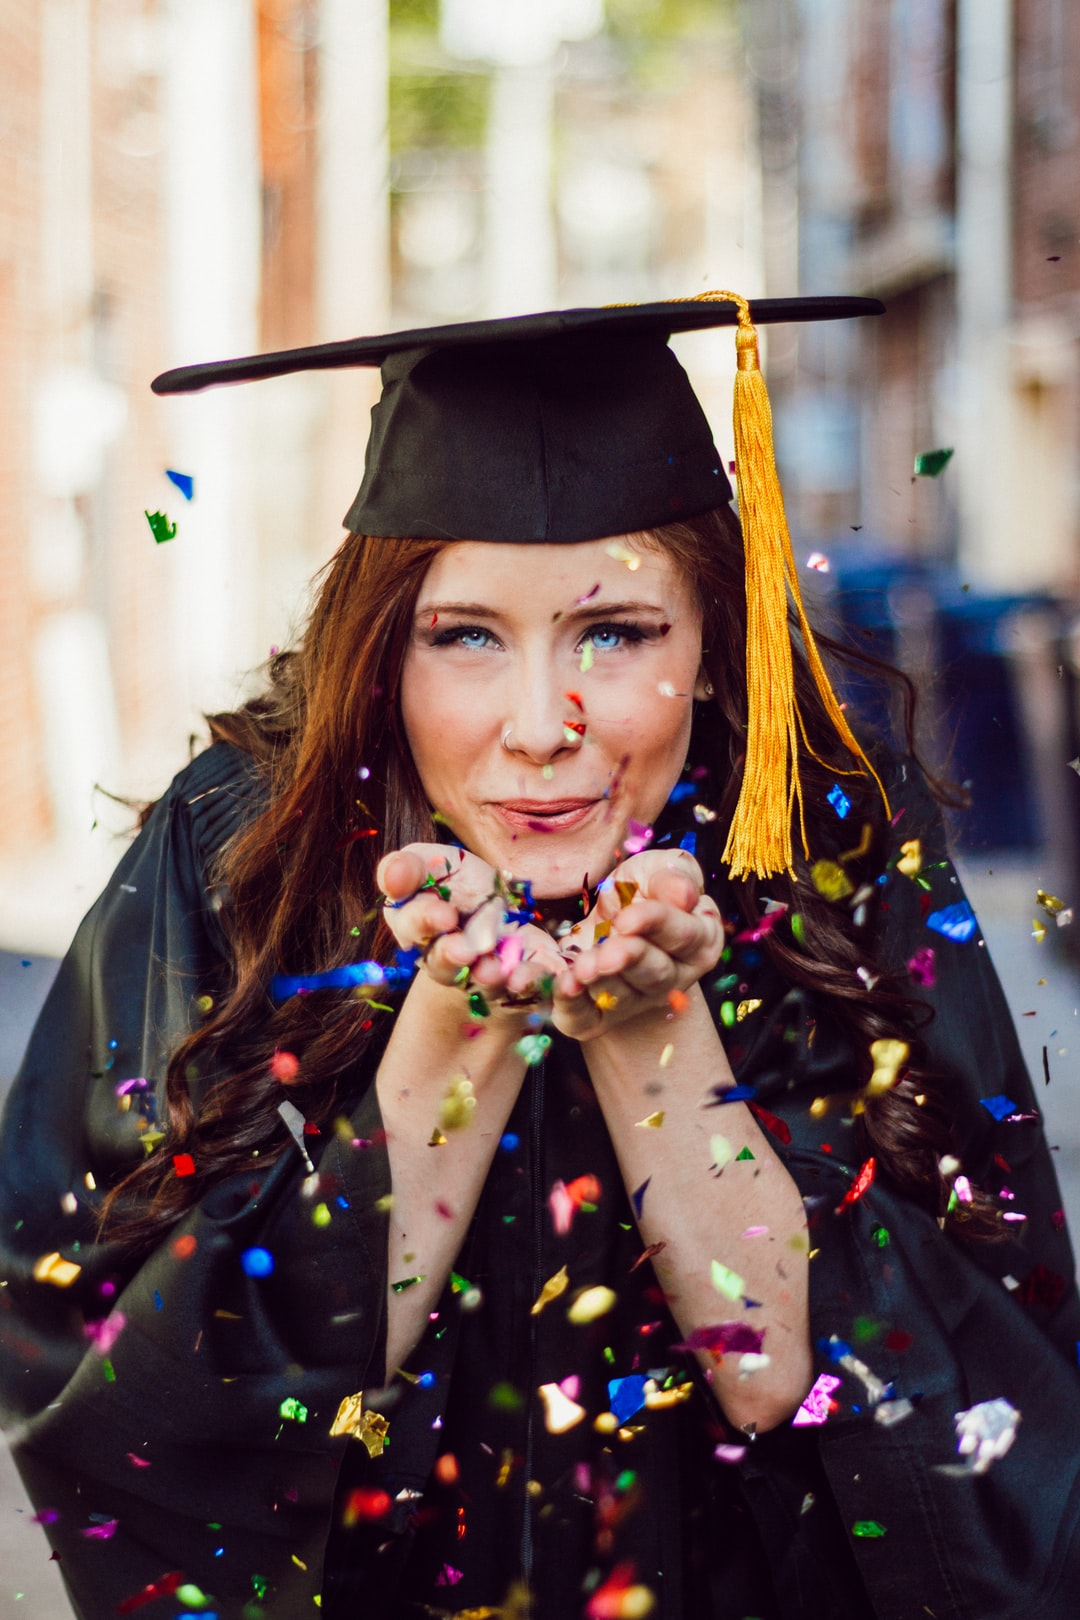 Took this photo on one of my photoshoots and really enjoyed the way it came out. Couldn't find anywhere we could blow the confetti around so we went to an alley way and did it there. It turned out really beautifully and would love to do it again. Not to mention that the confetti was only a buck at a dollar store. its amazing how you can turn items that are not very photogenic into something magical!